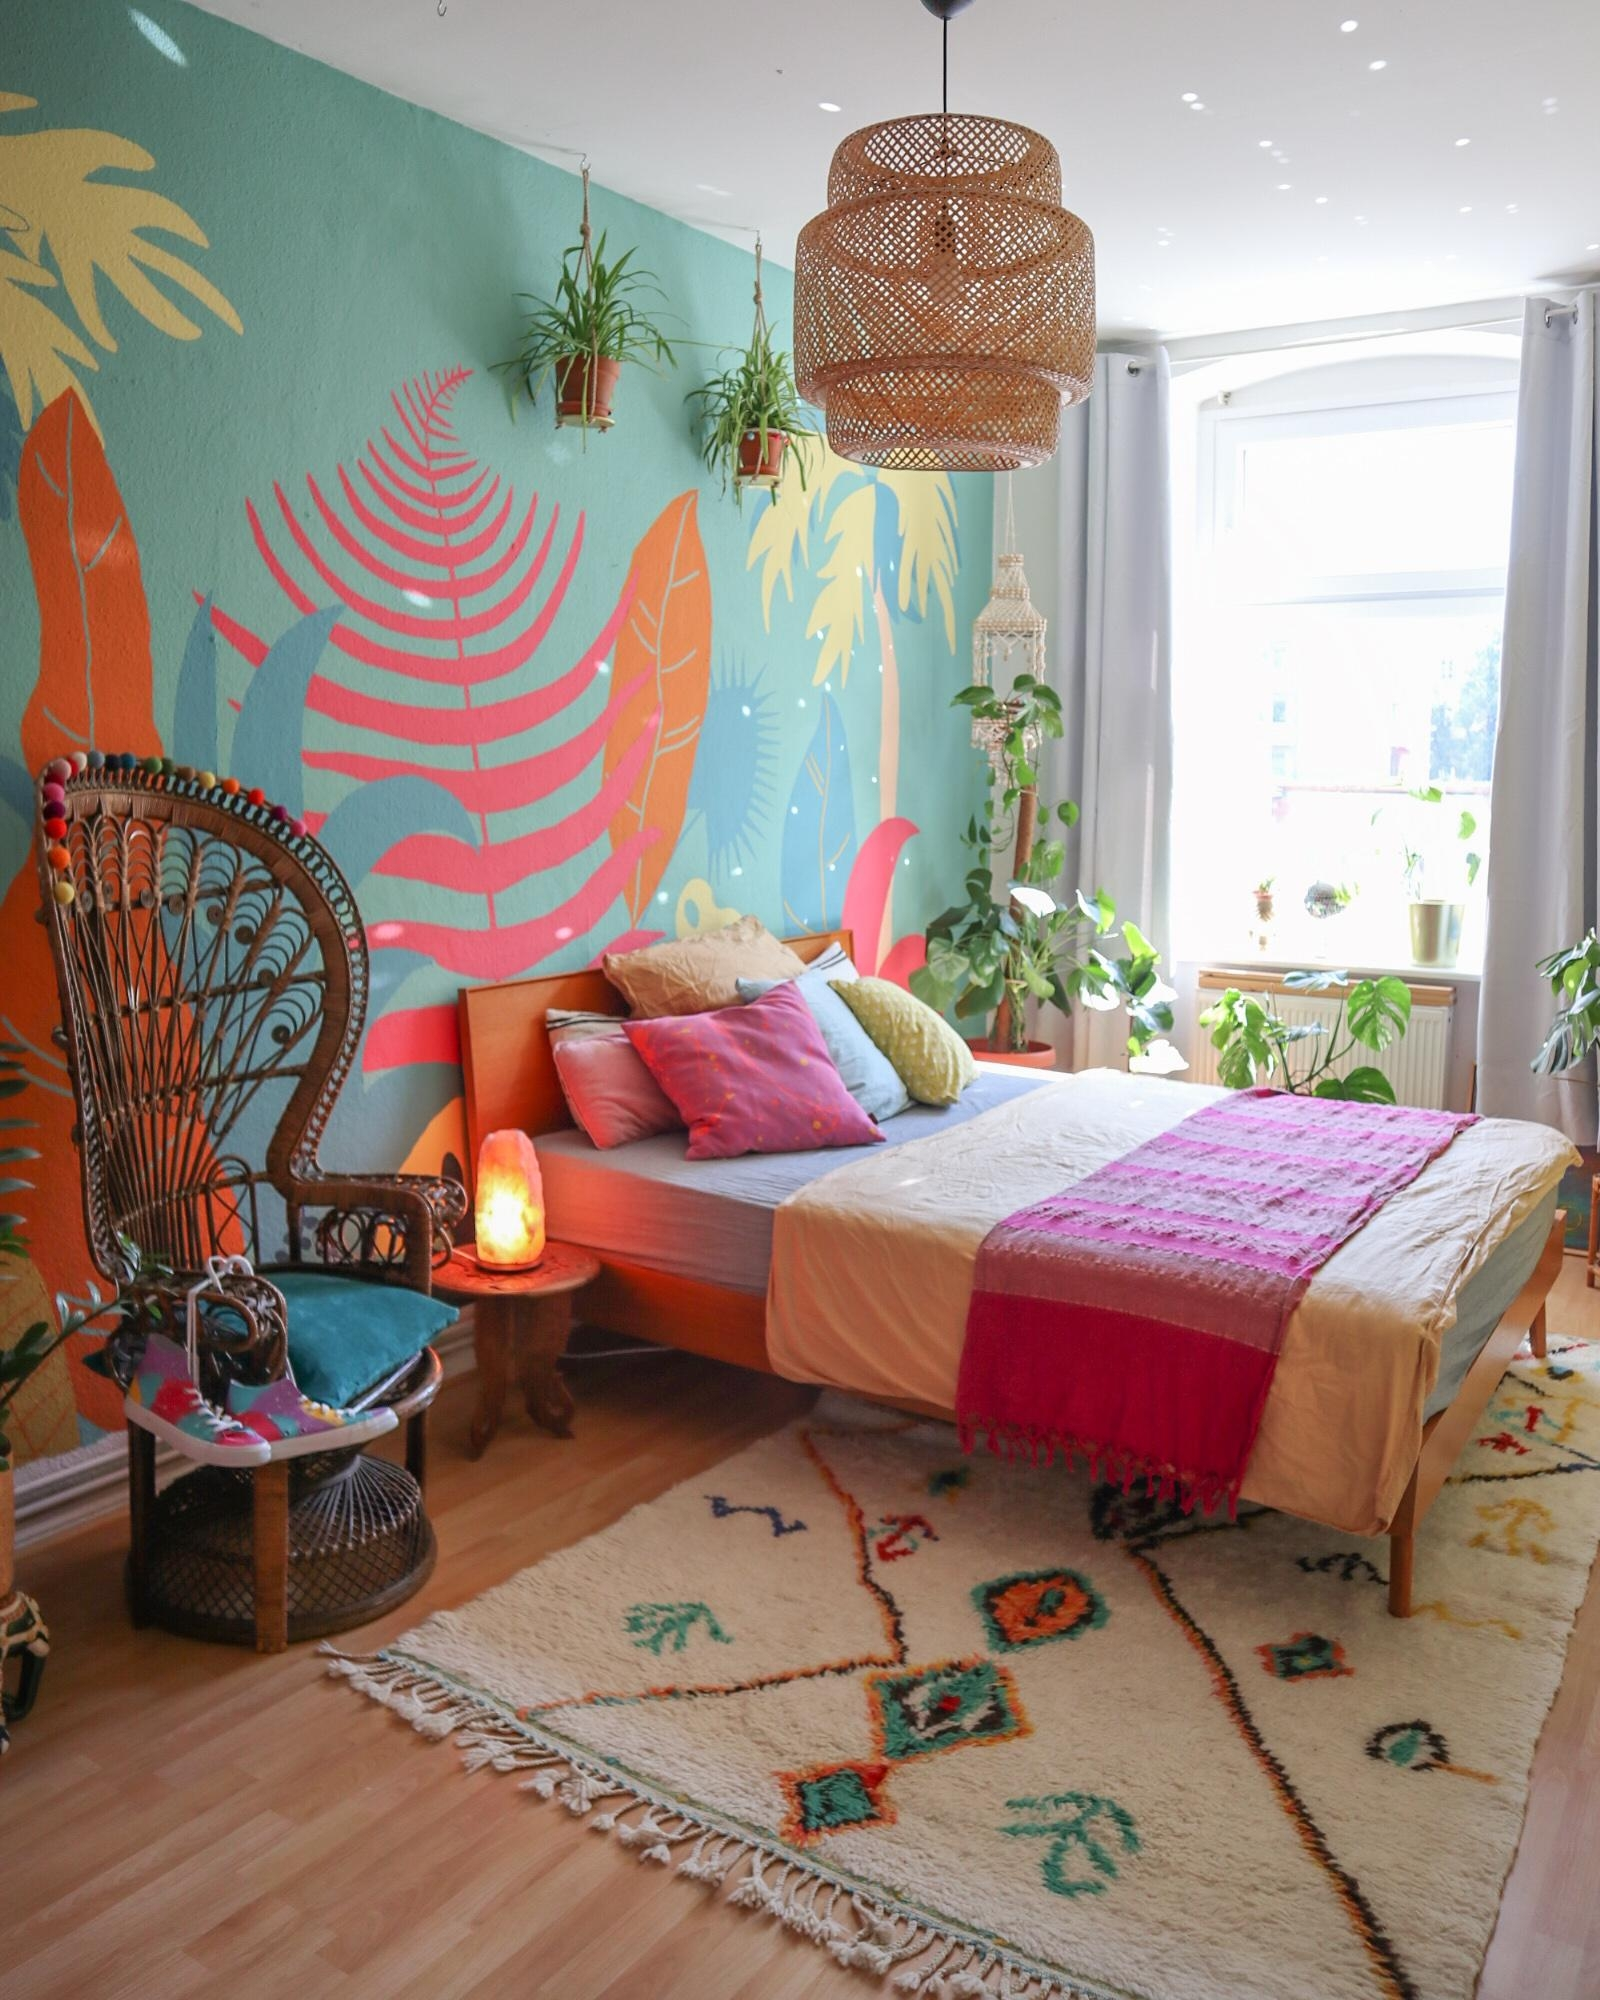 Bedroom colorful wallpainting  2466fd1f fde4 42e5 a008 5d98c06cc1c8